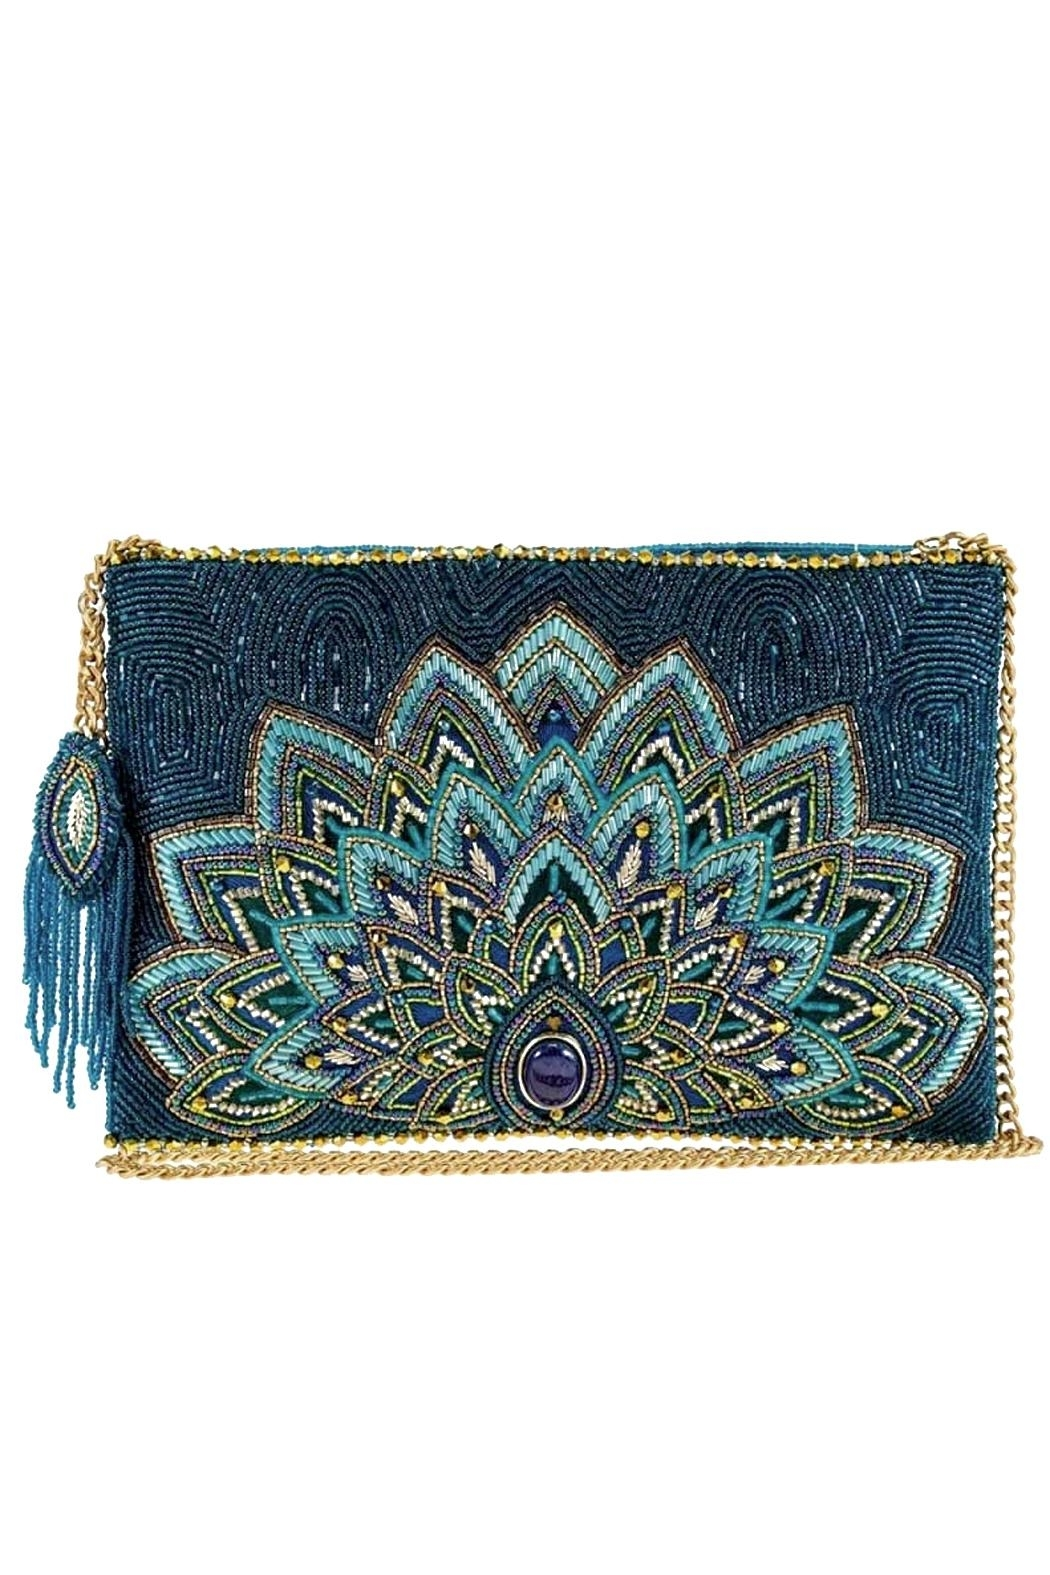 Mary Frances Passion Peacock - Princess Jasmine Crossbody - Front Cropped Image